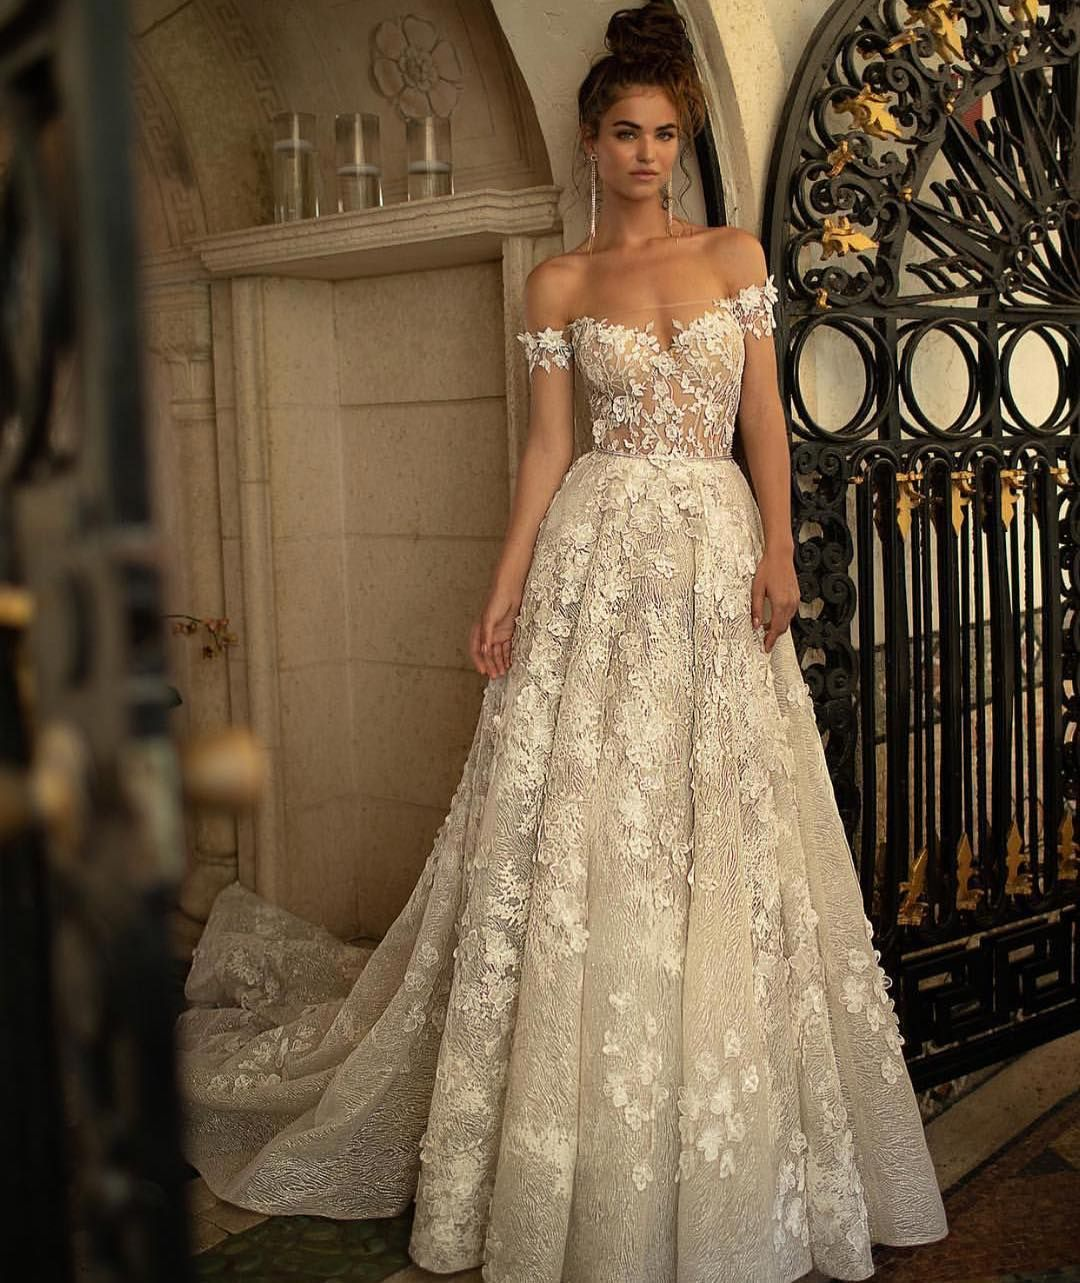 Pin by aysun keskin on KELEBEK  Pinterest  Wedding dresses